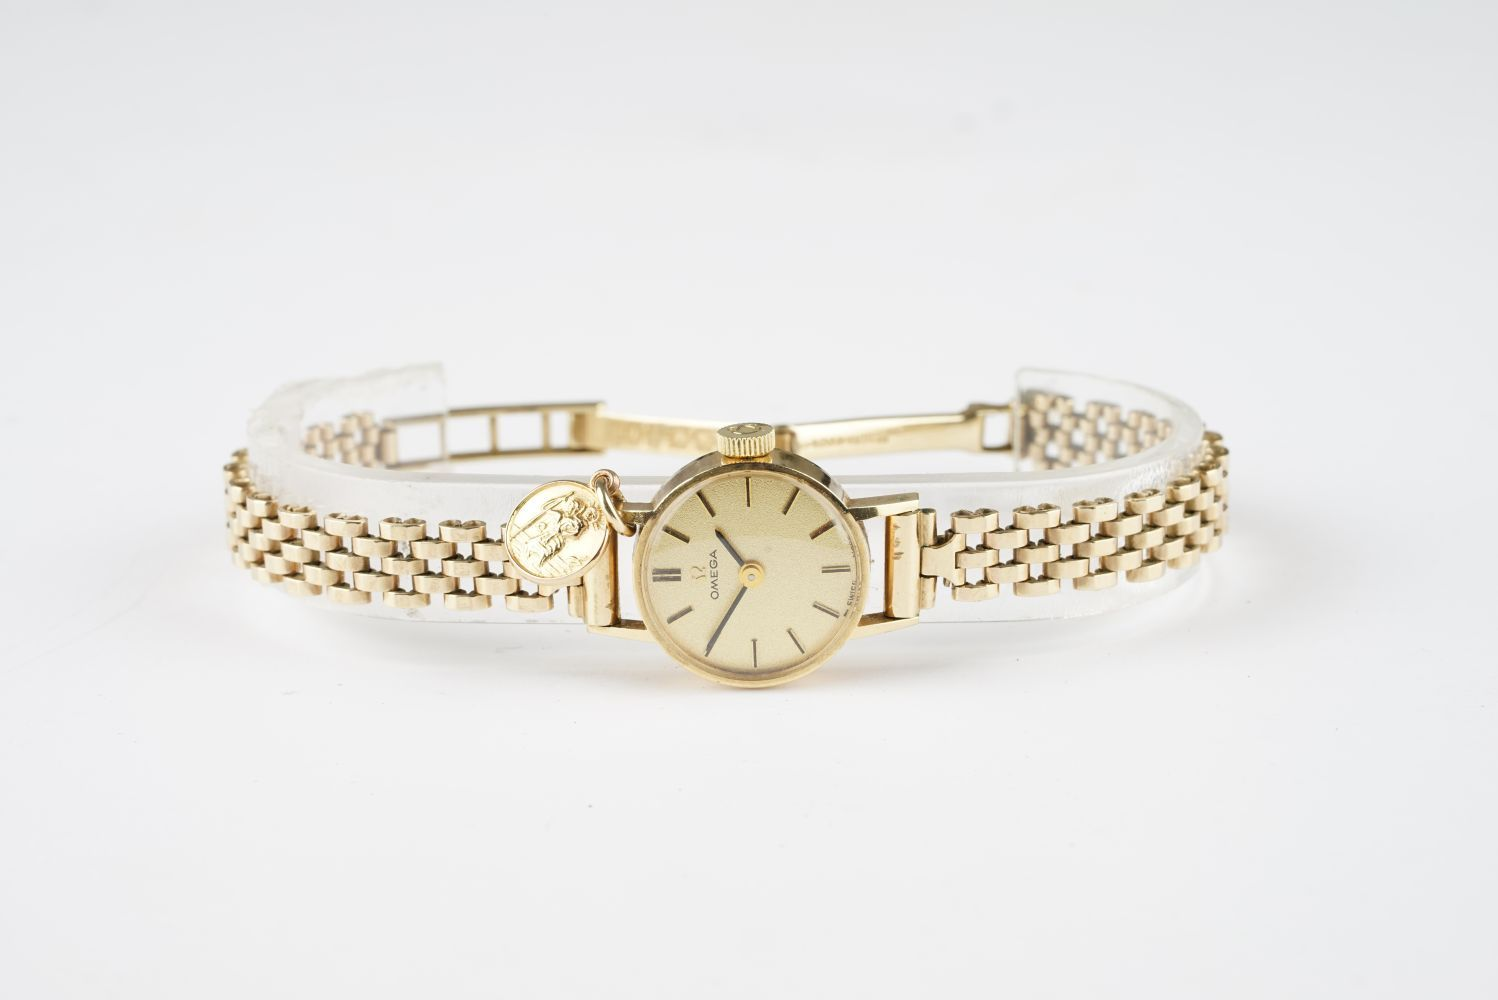 LADIES OMEGA 9CT GOLD COCKTAIL WATCH W/ PENDANT, circular champagne dial with stick hour markers and